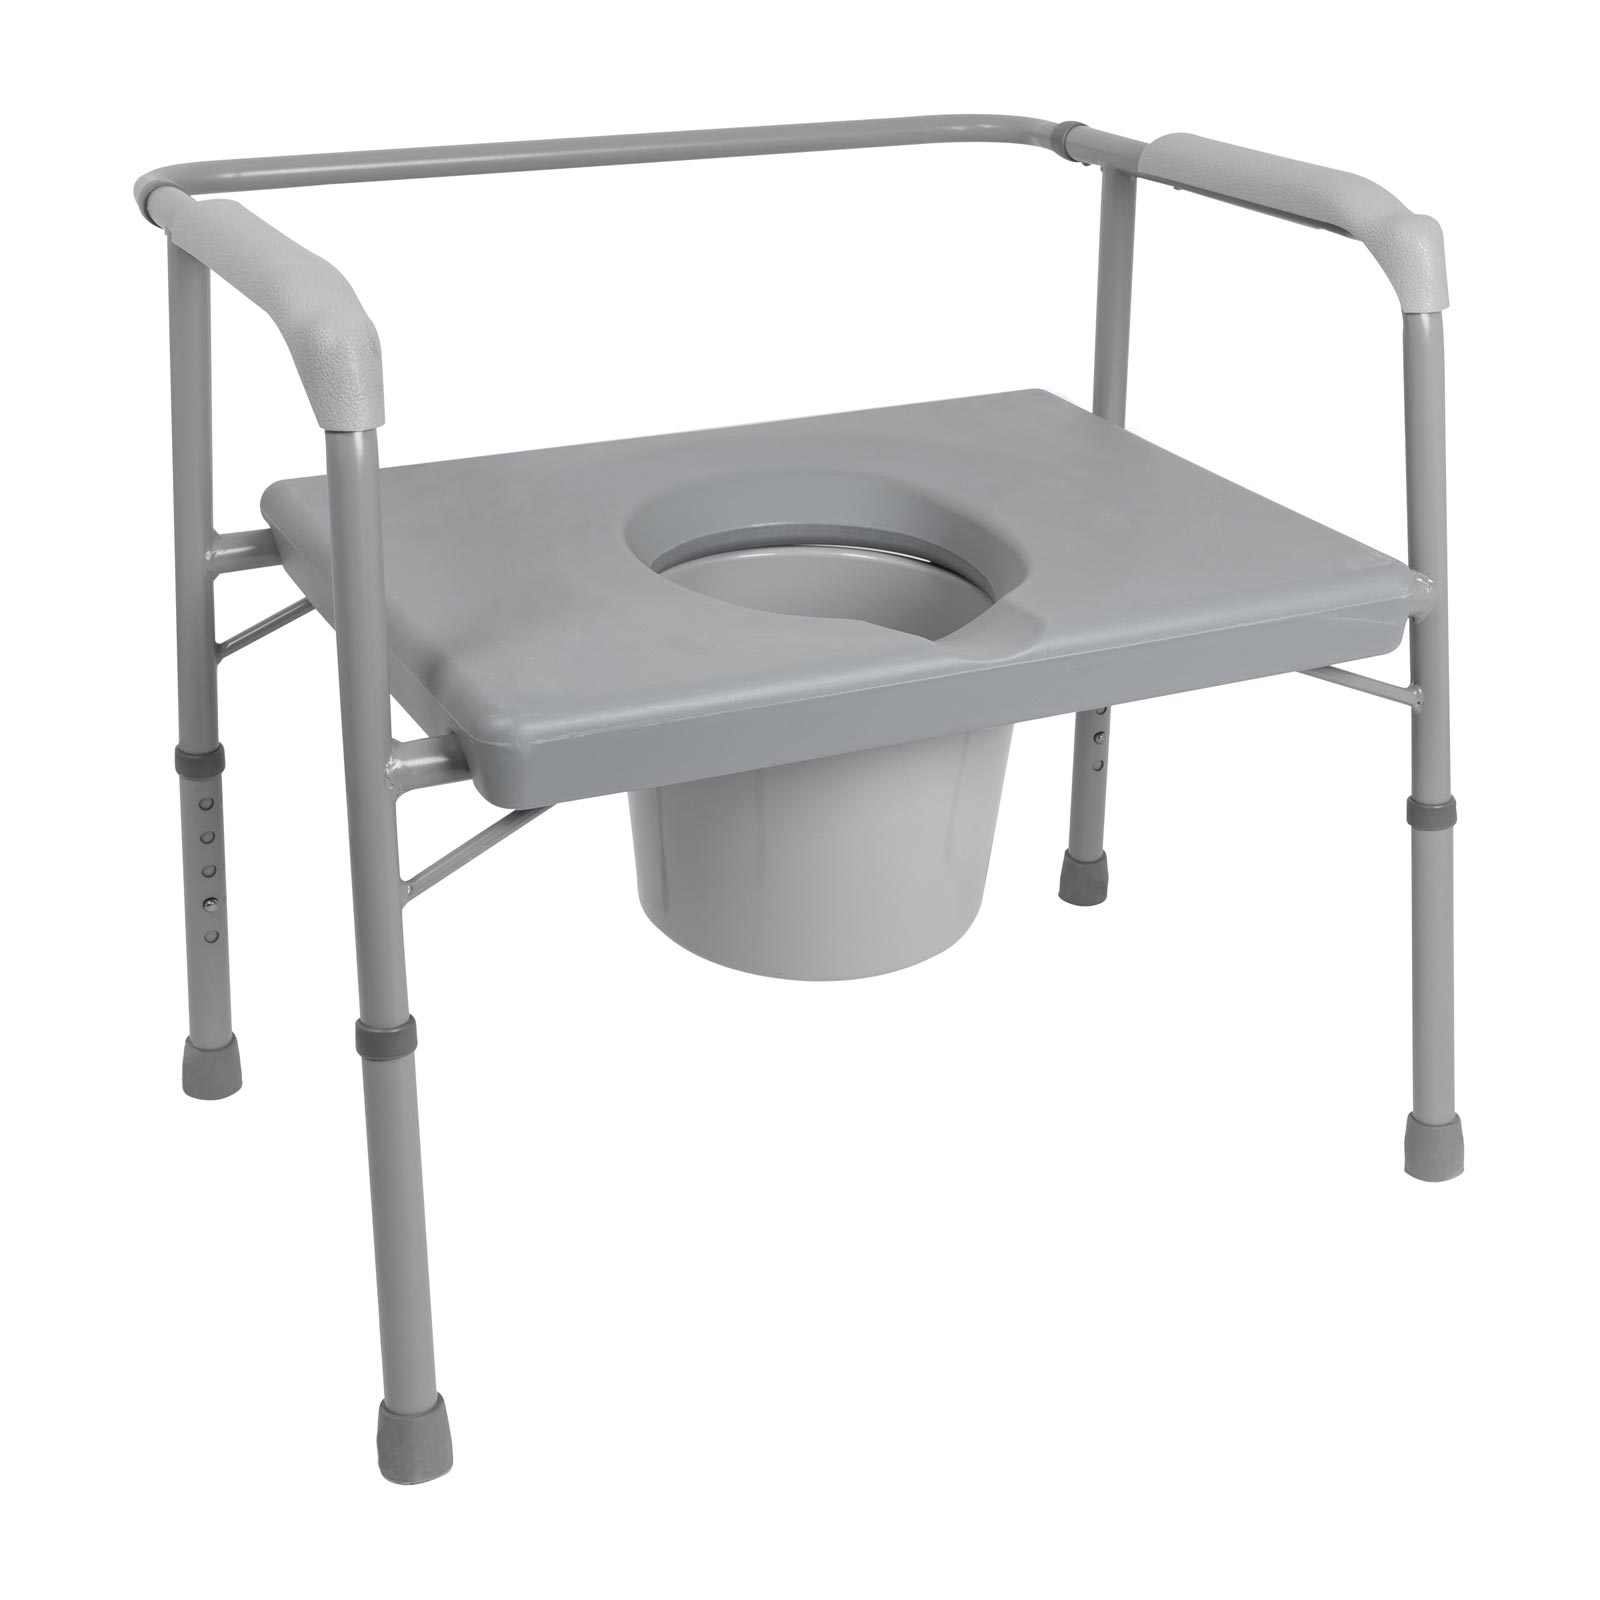 ProBasics Bariatric Commode with Extra Wide Seat